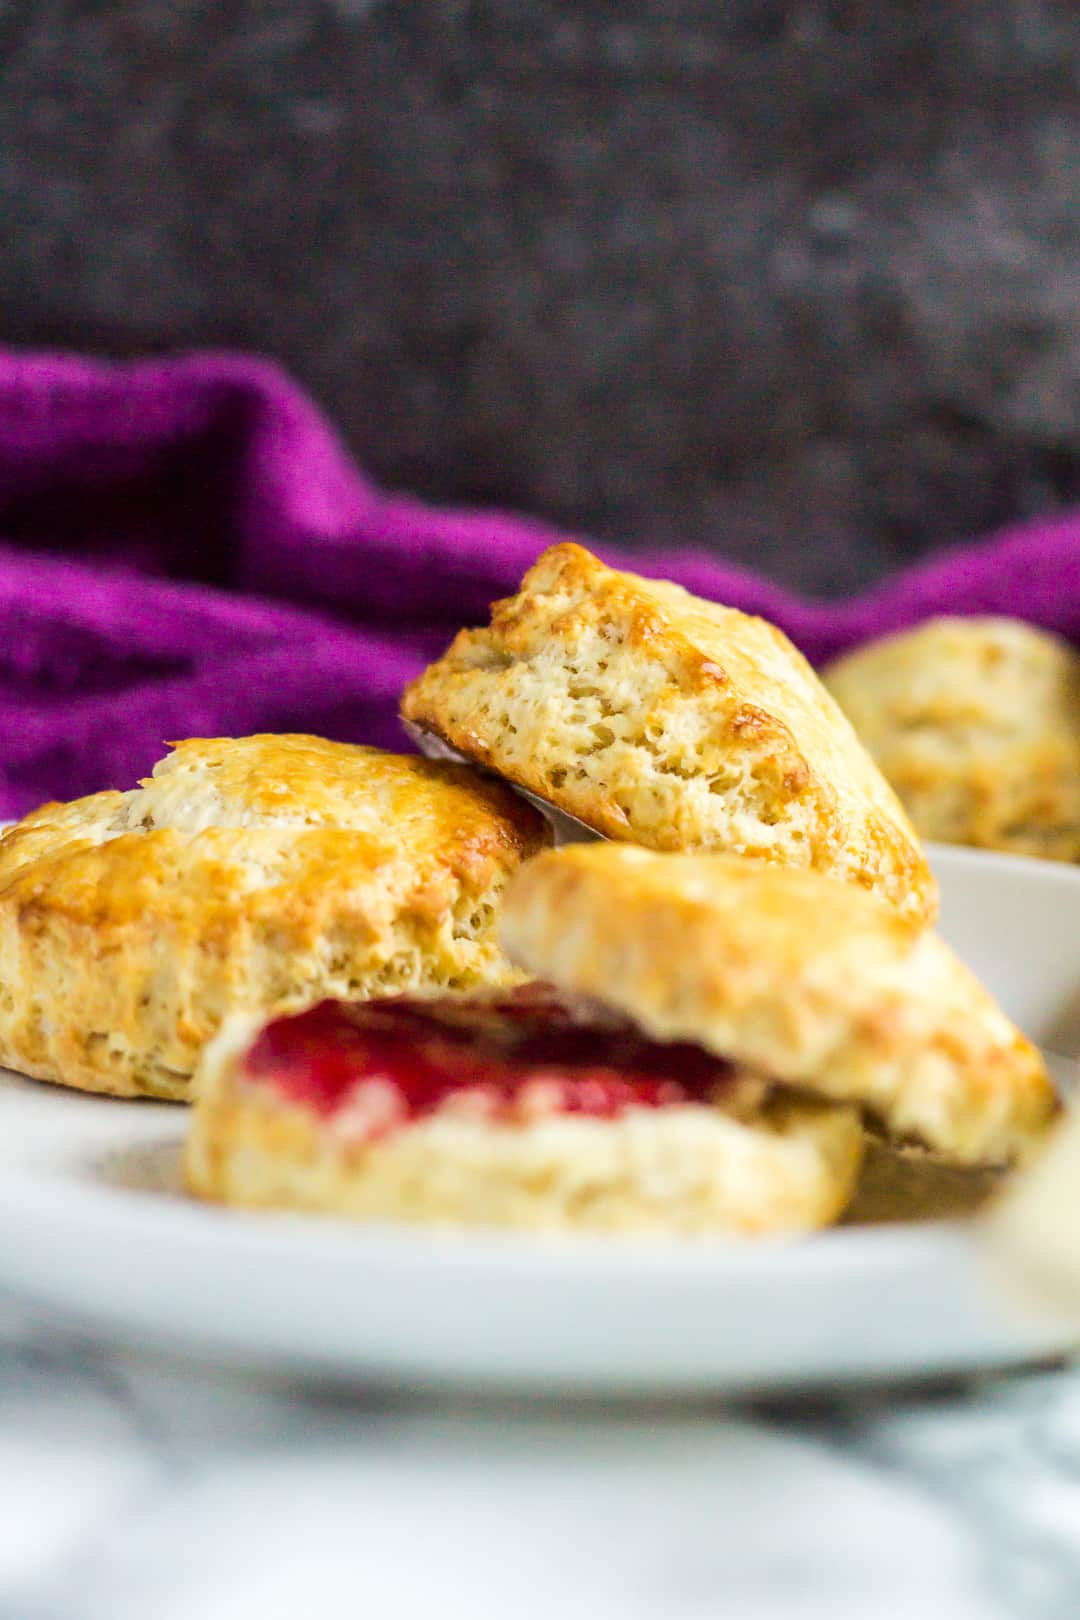 Classic English Scones served on a small white plate with one cut in half and spread with strawberry jam.